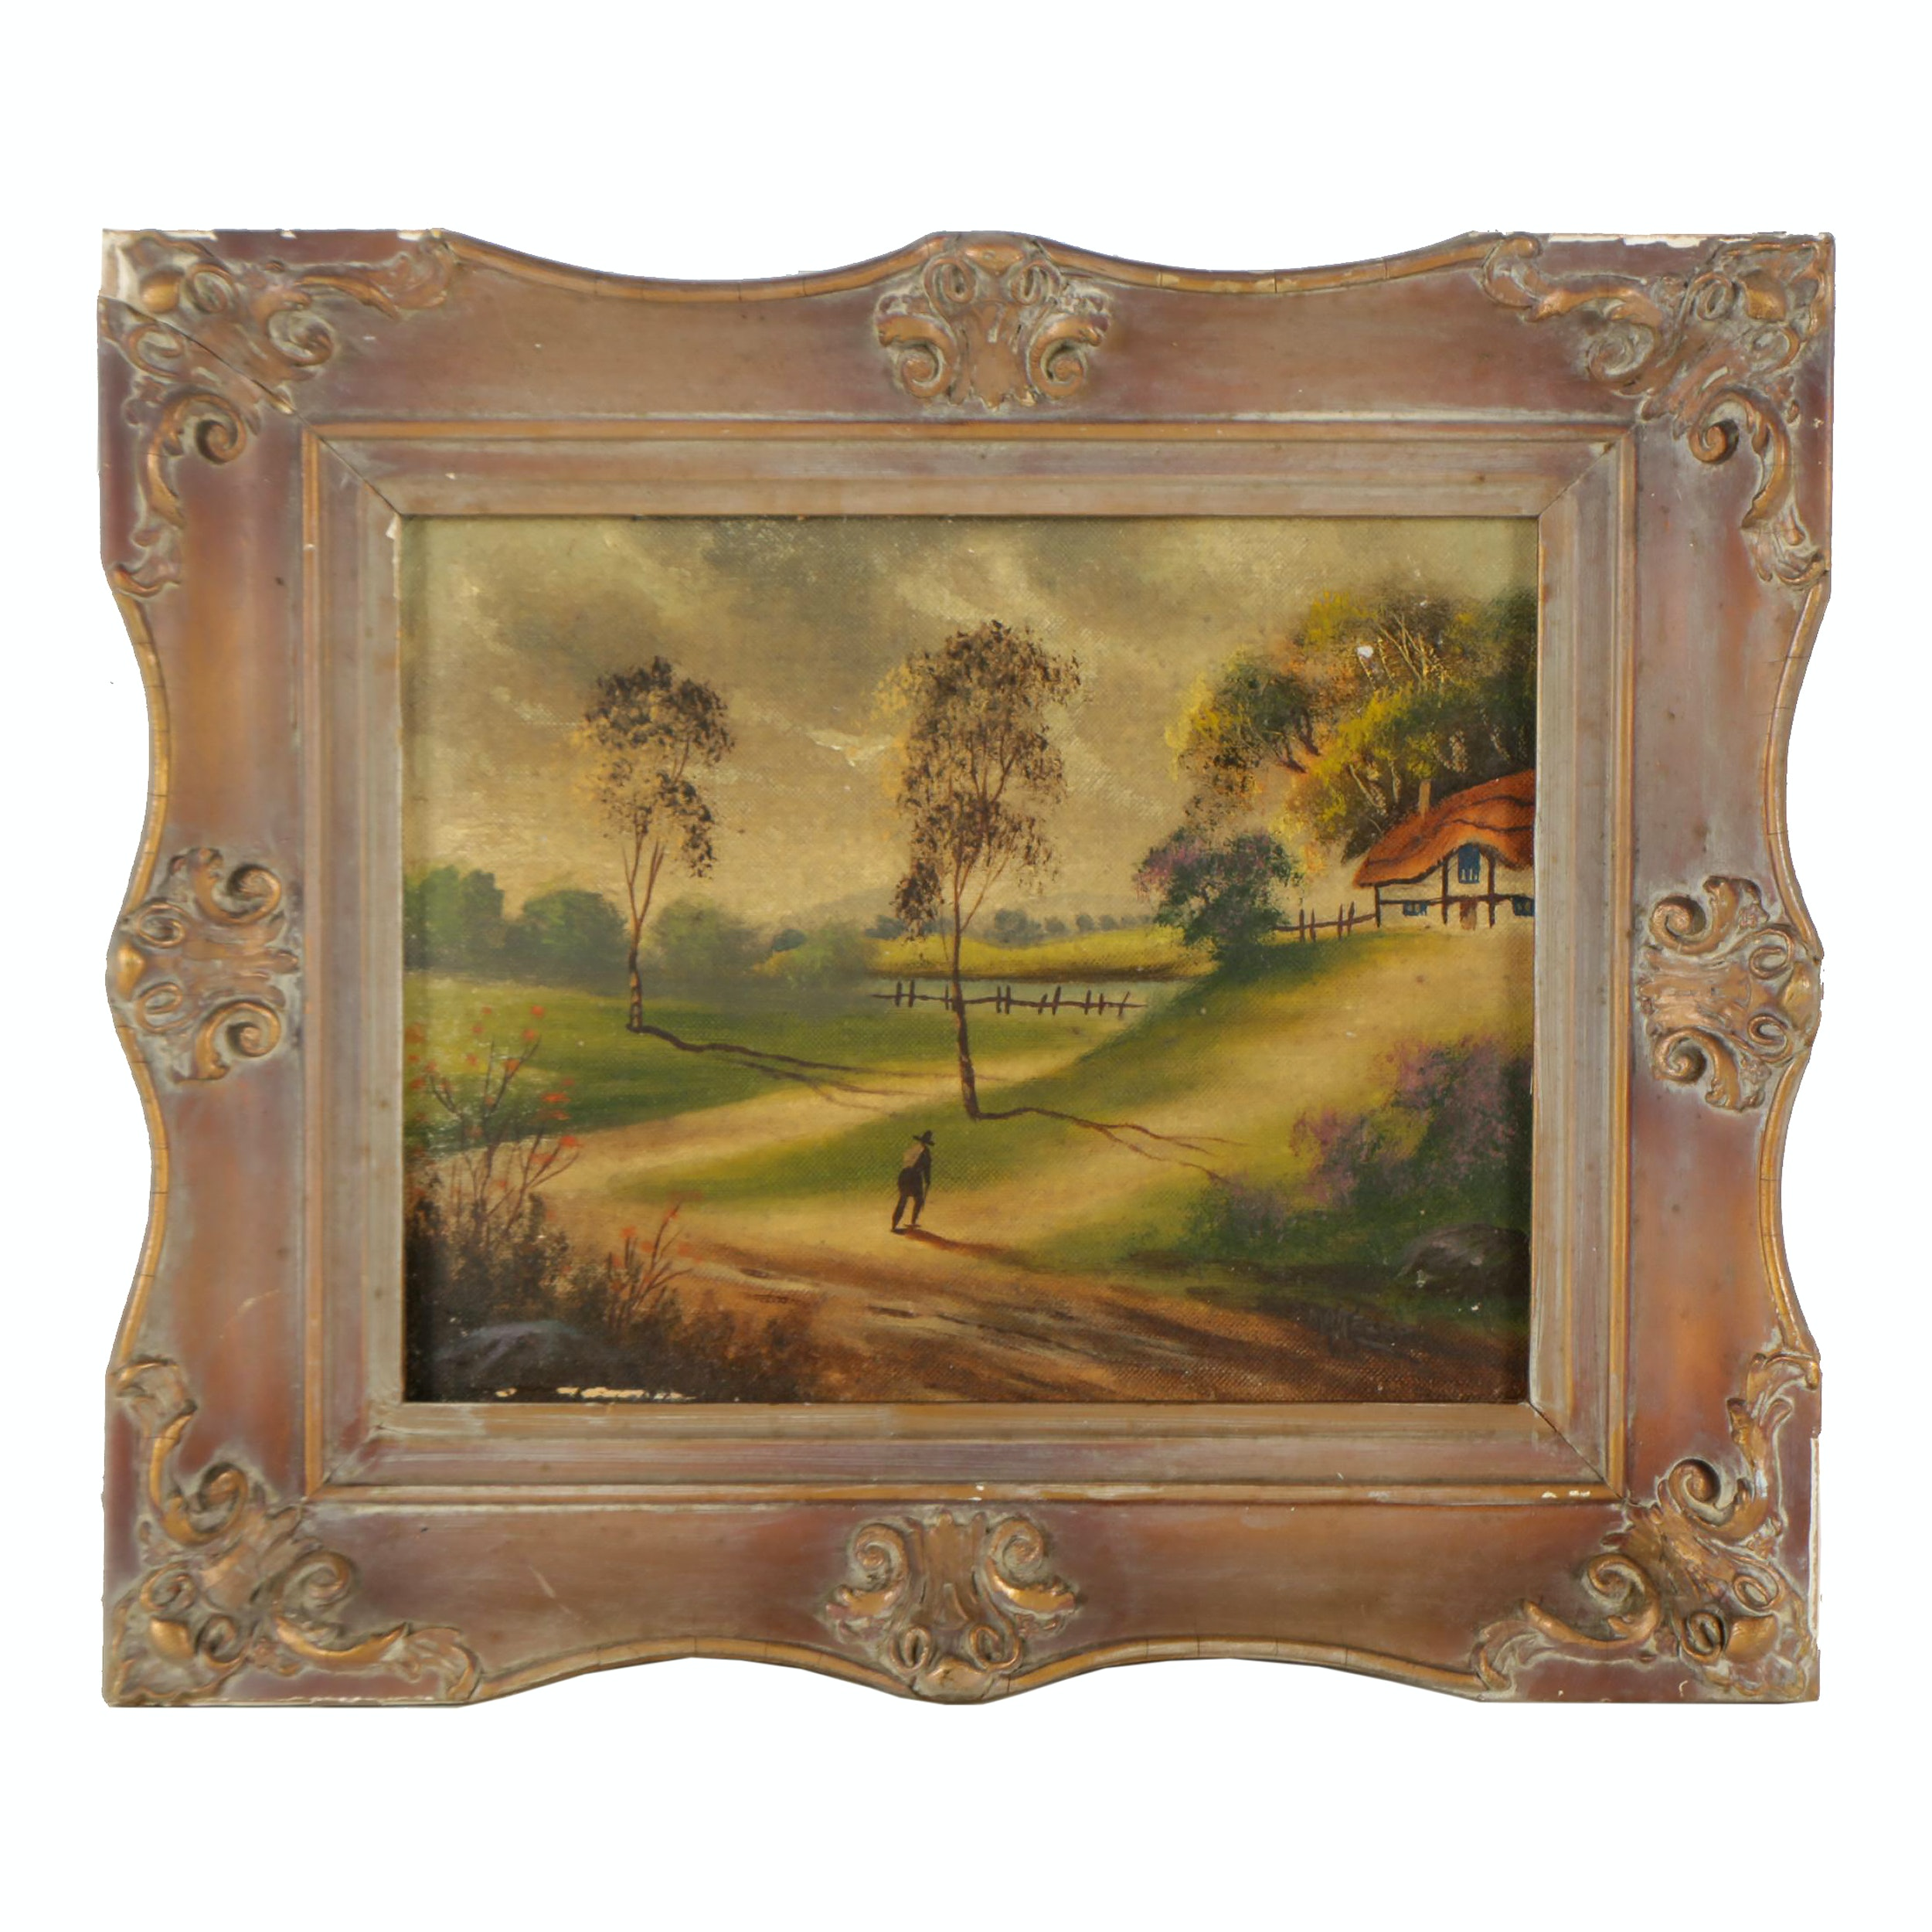 20th Century Oil Painting of a Rural Scene